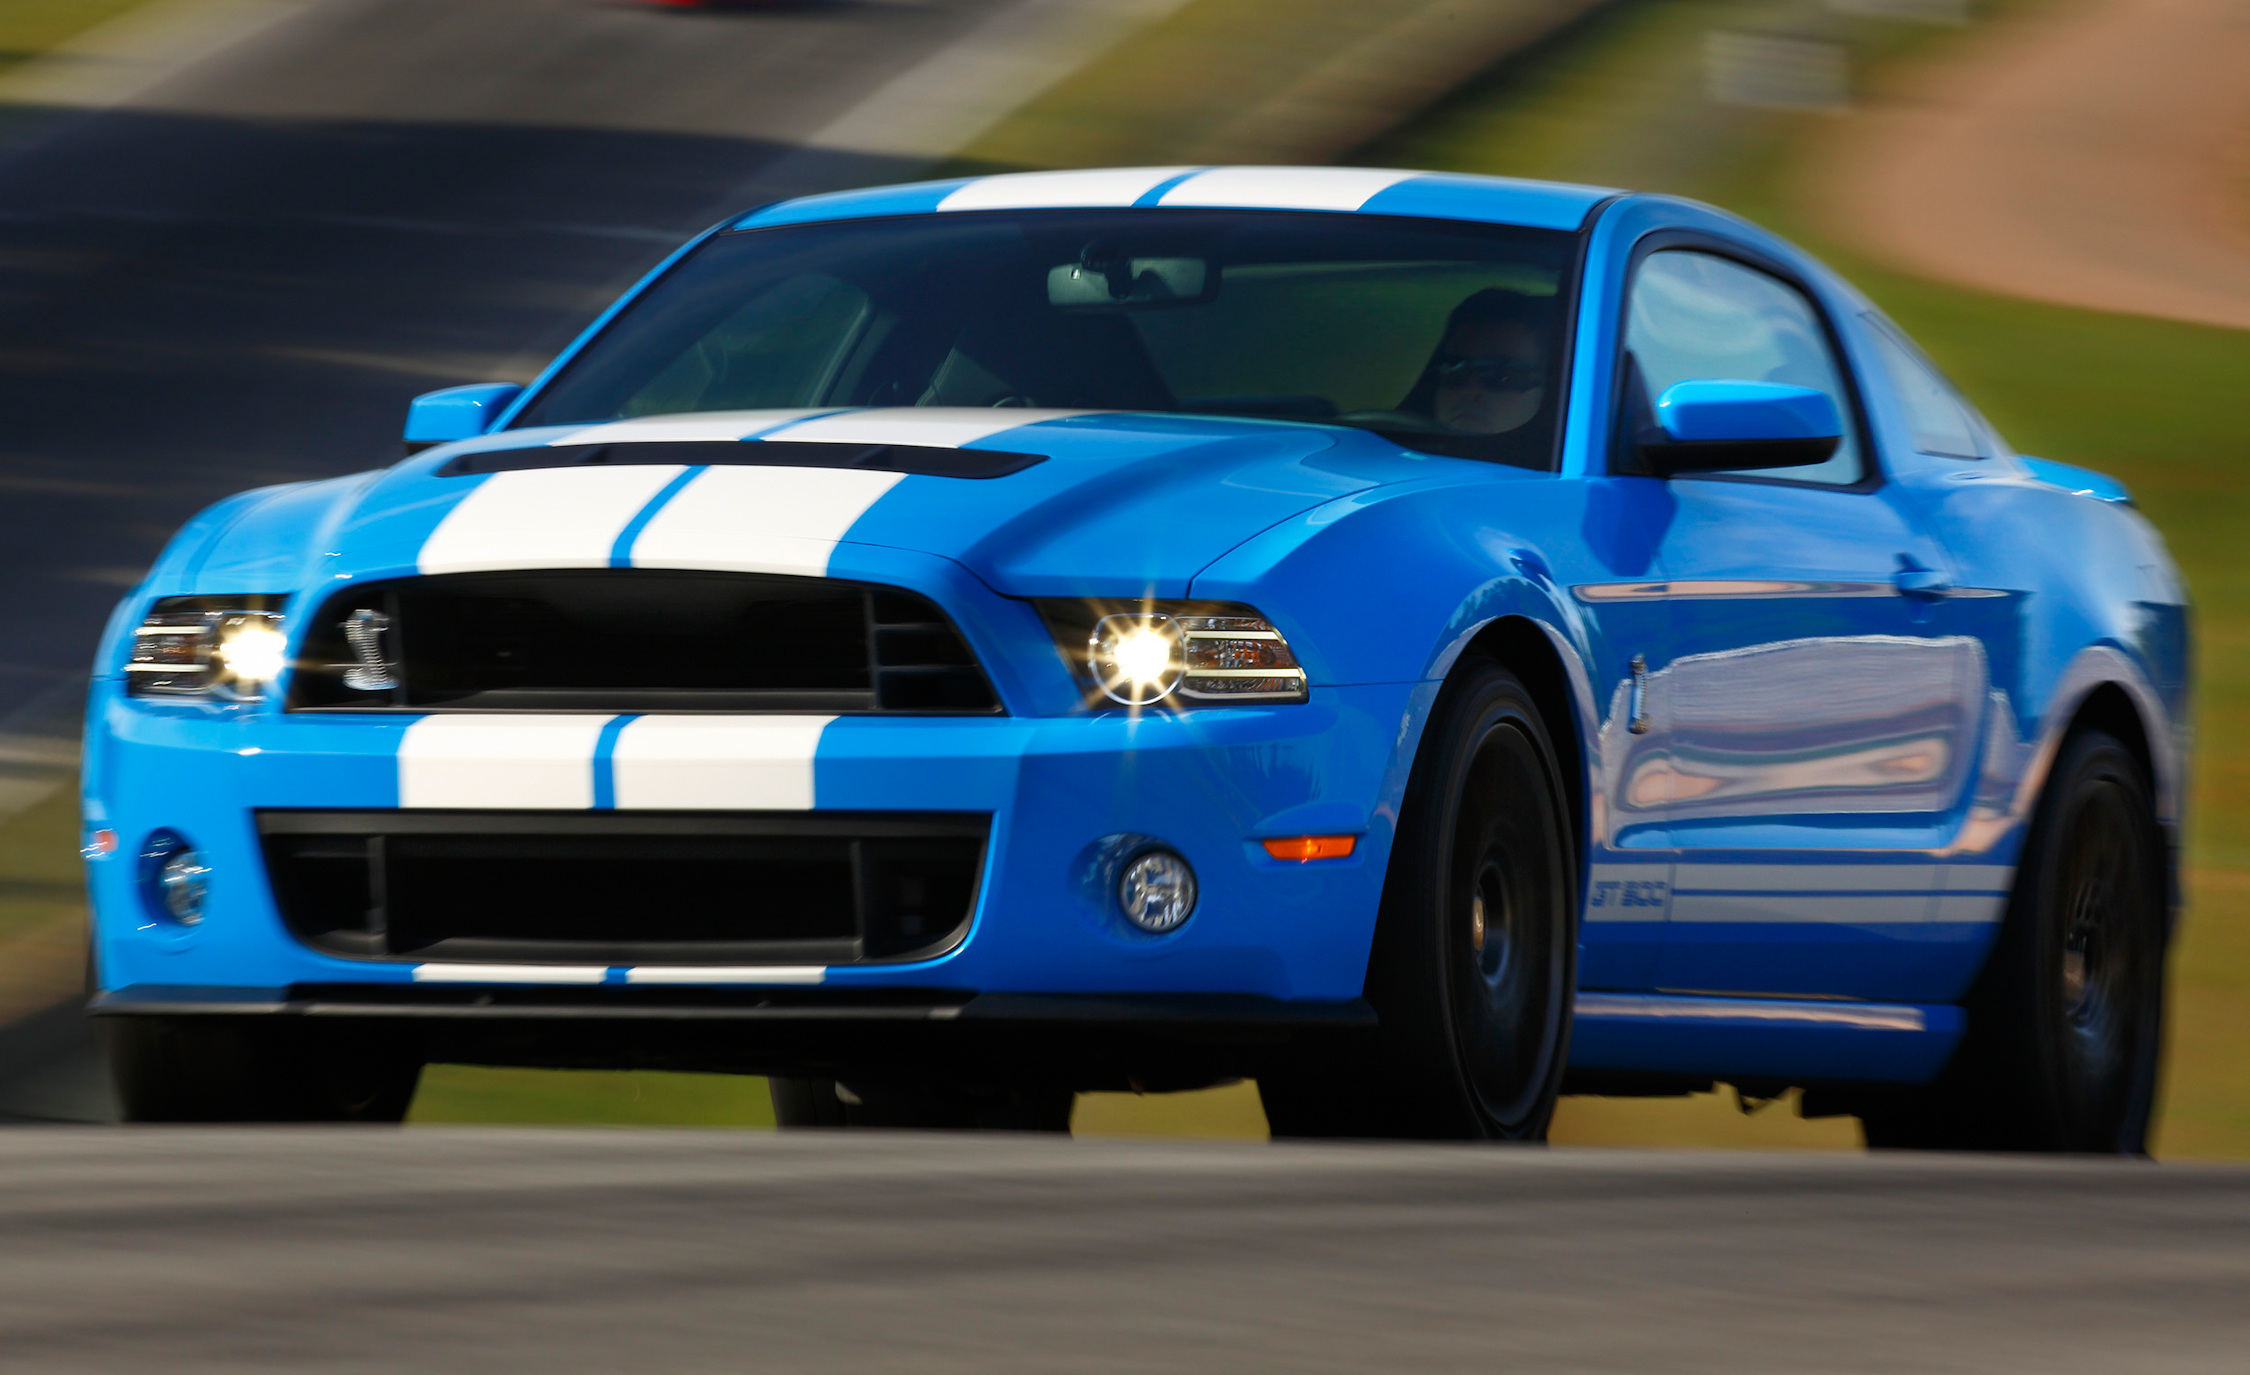 2013 Ford Mustang Shelby GT500 Blue Test Drive Preview (Photo 16 of 47)